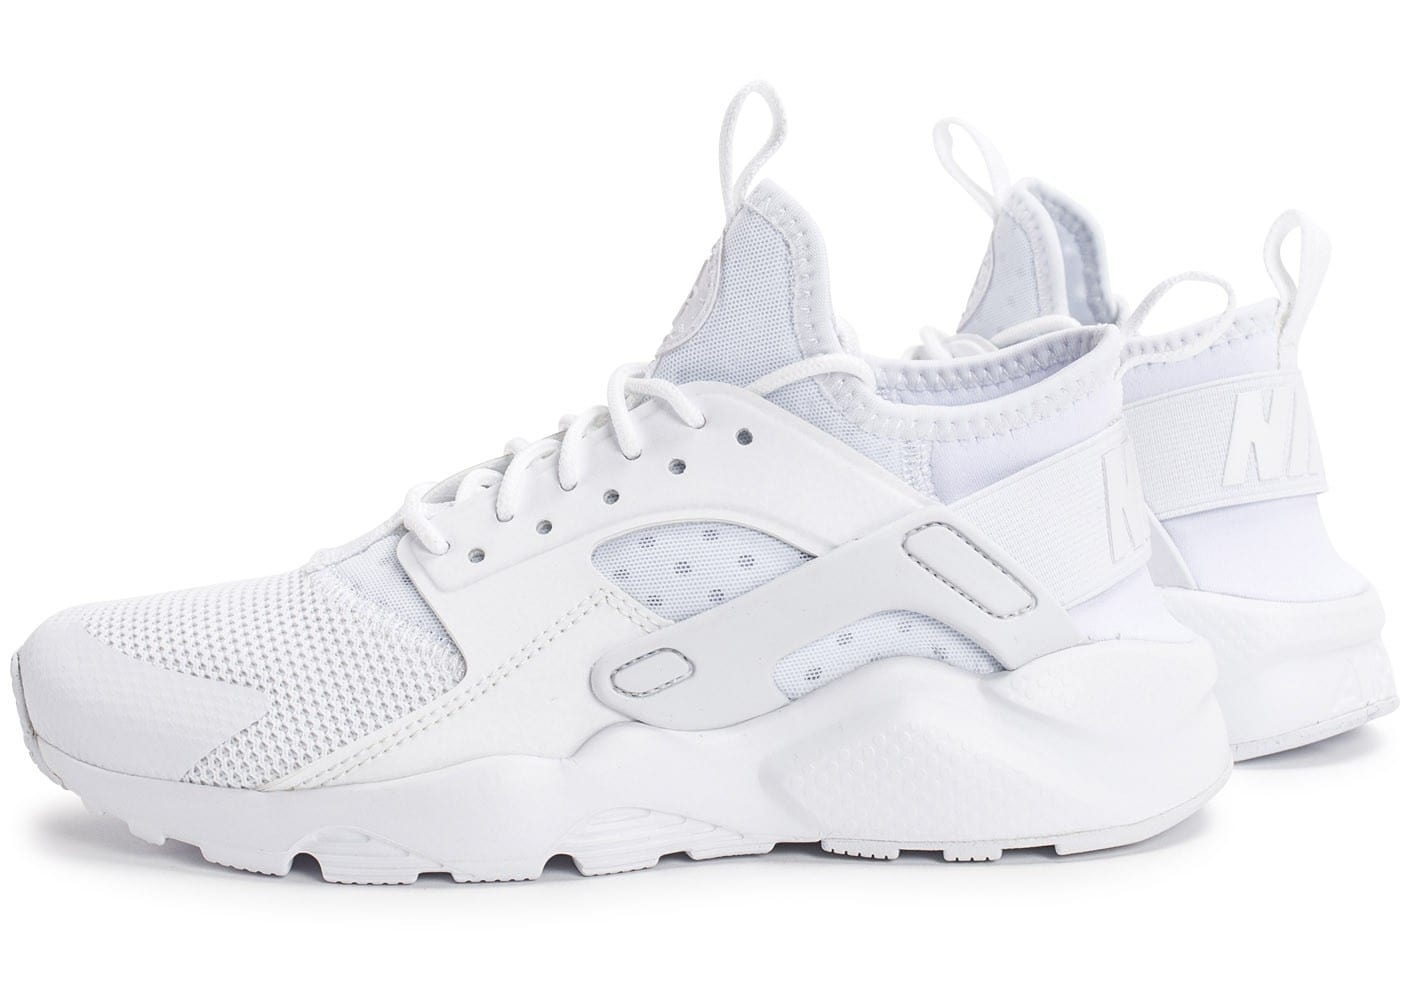 Air Cool Chaussures Ultra Blanche Huarache Run Nike Baskets Junior fgd7qfx